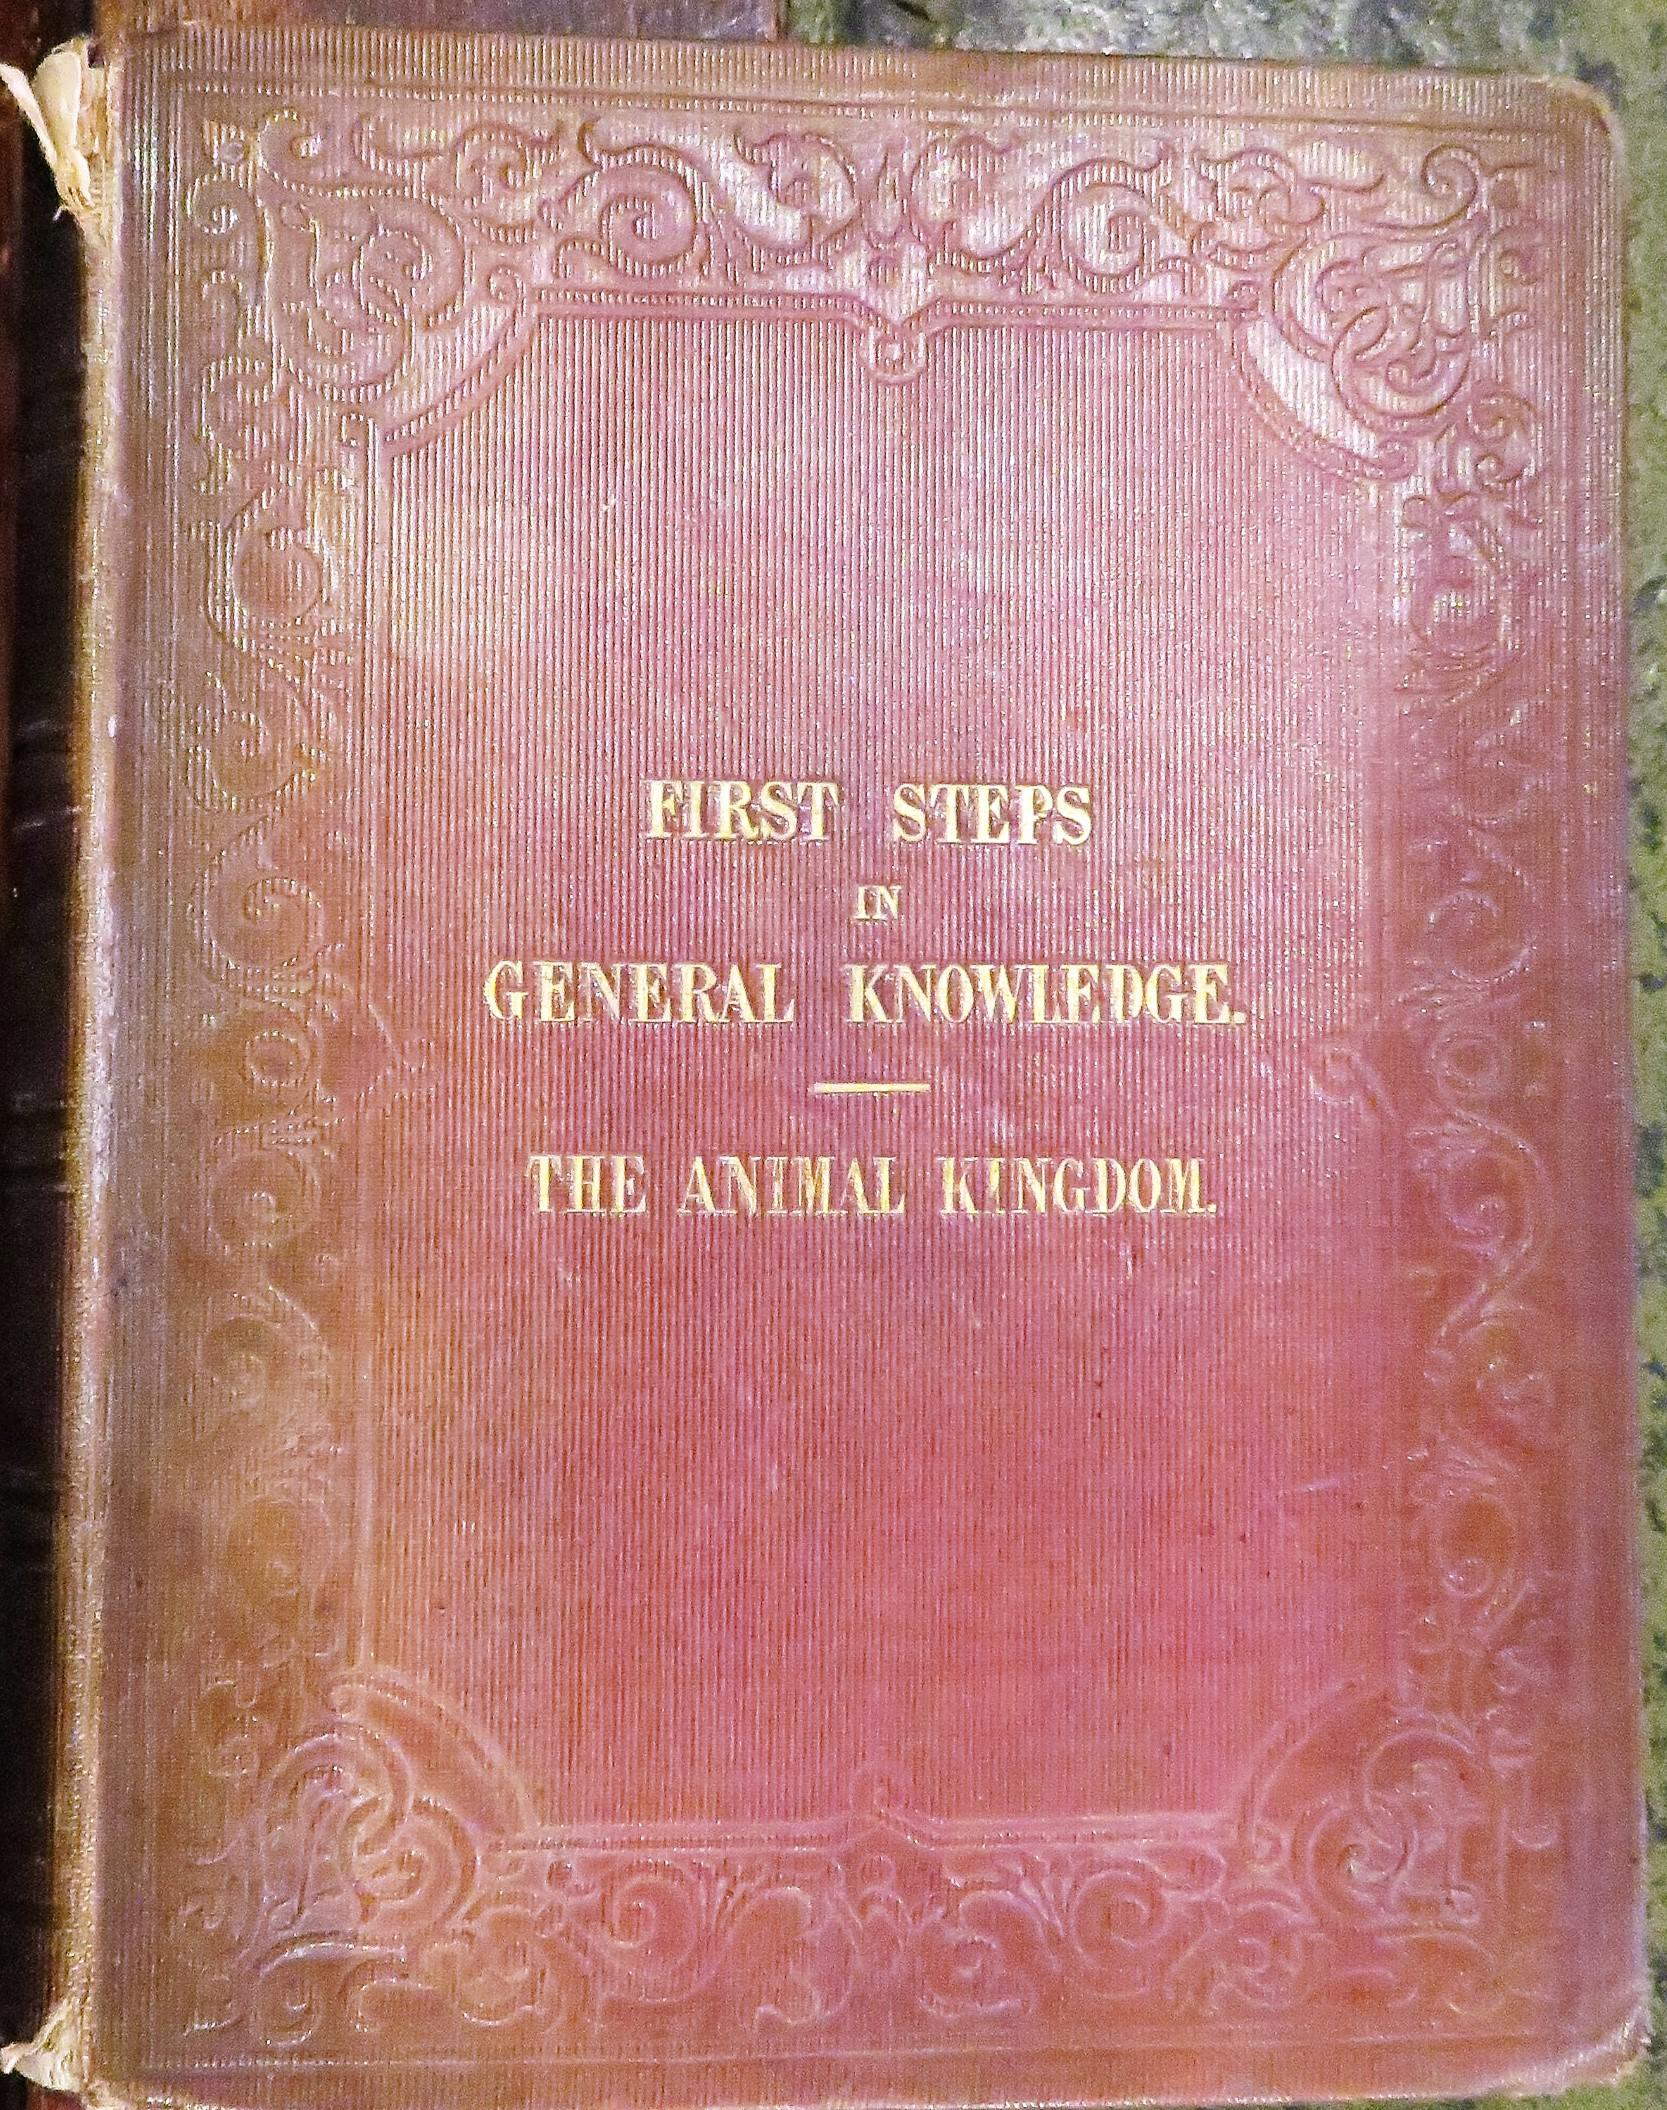 First Steps in General Knowledge Part III The Animal Kingdom